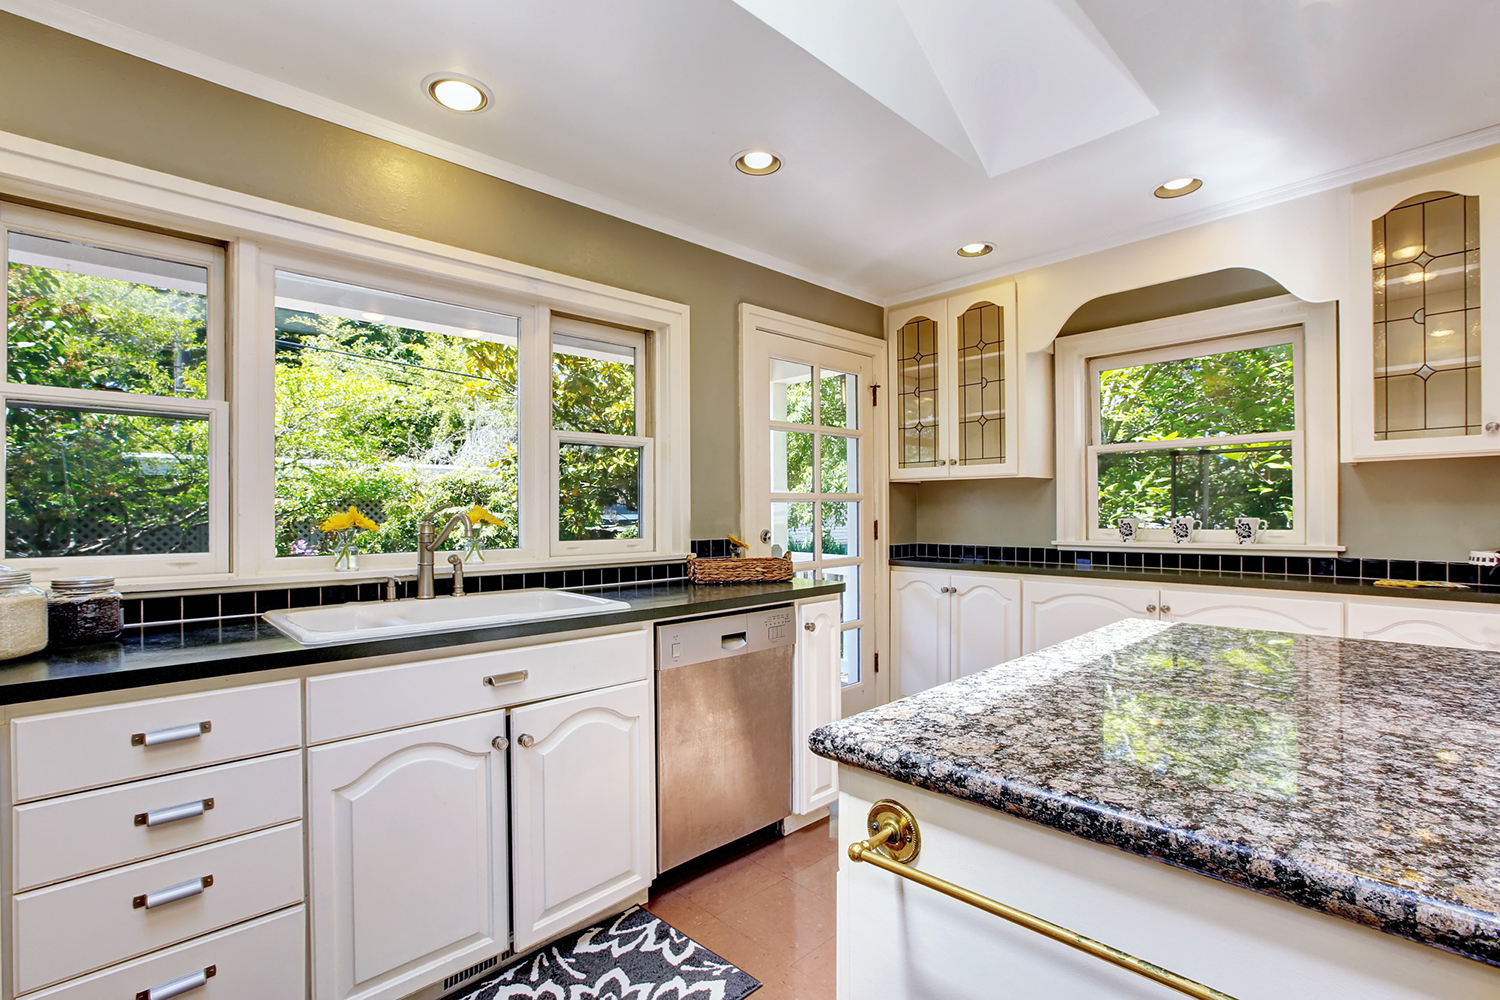 Beautiful kitchen interior seen during a home inspection